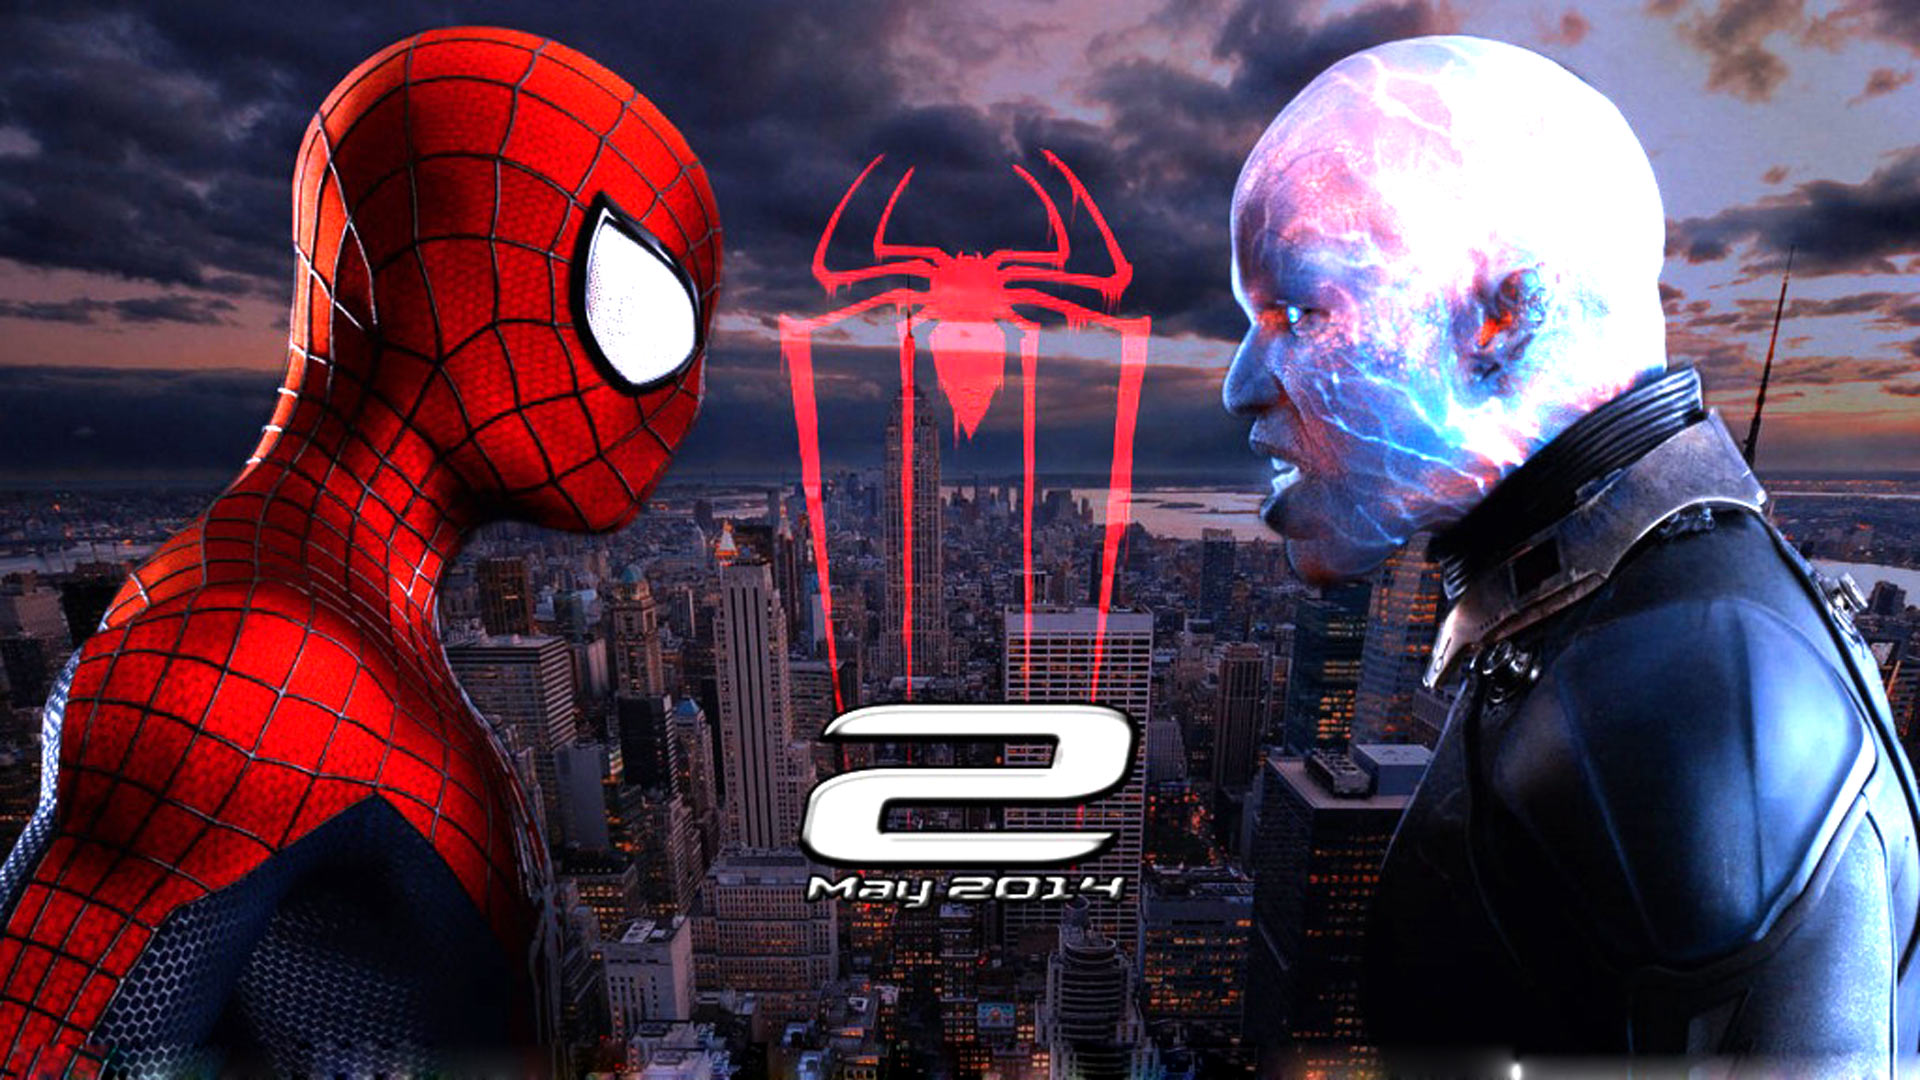 Amazing-Spiderman-Movie-Review-It-was-a-tough-task-to-keep-the-amazing-coming-whatsoever-Marc-We-wallpaper-wp3402306